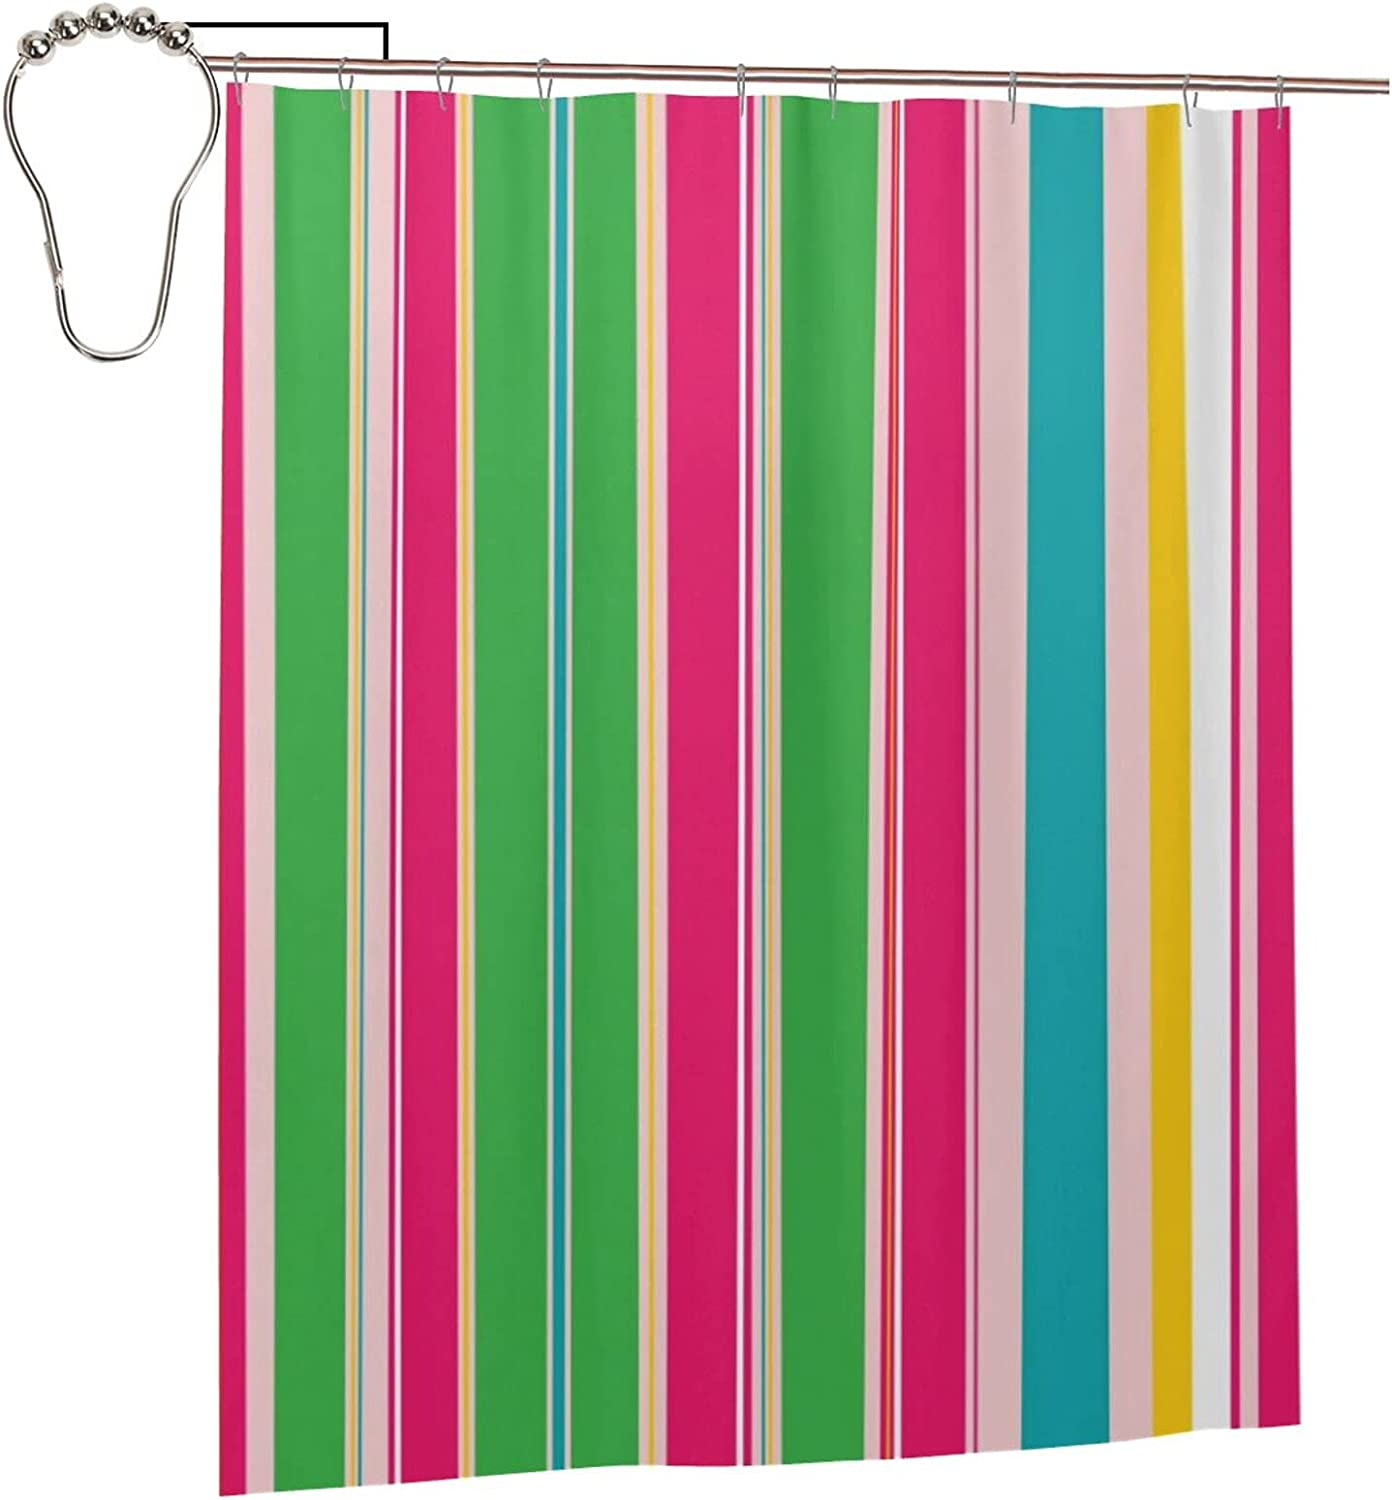 WIUEZWY Strips Selling rankings Waterproof Fabric Odorless Japan's largest assortment Curta Shower Curtains